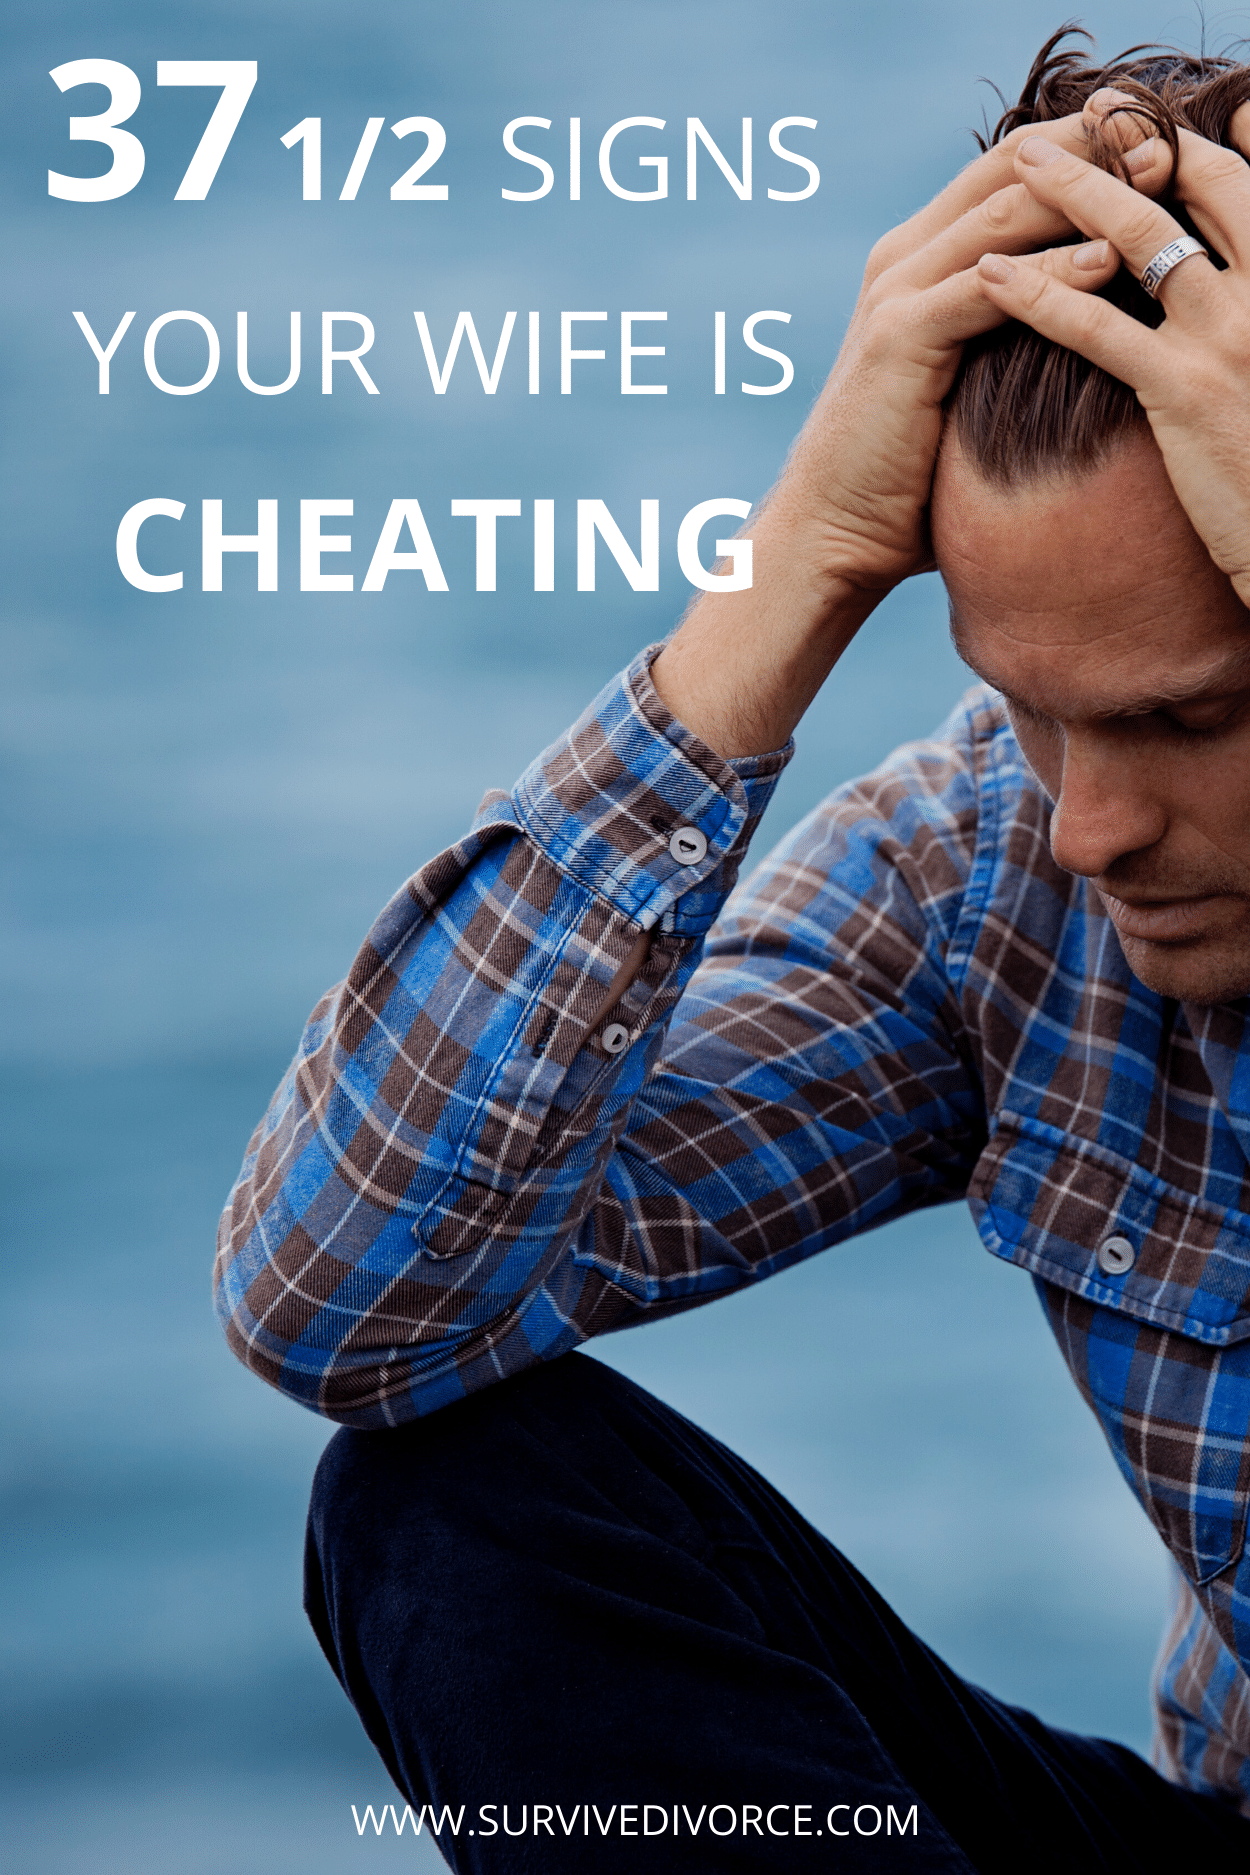 Usually when someone in the relationship is cheating, you